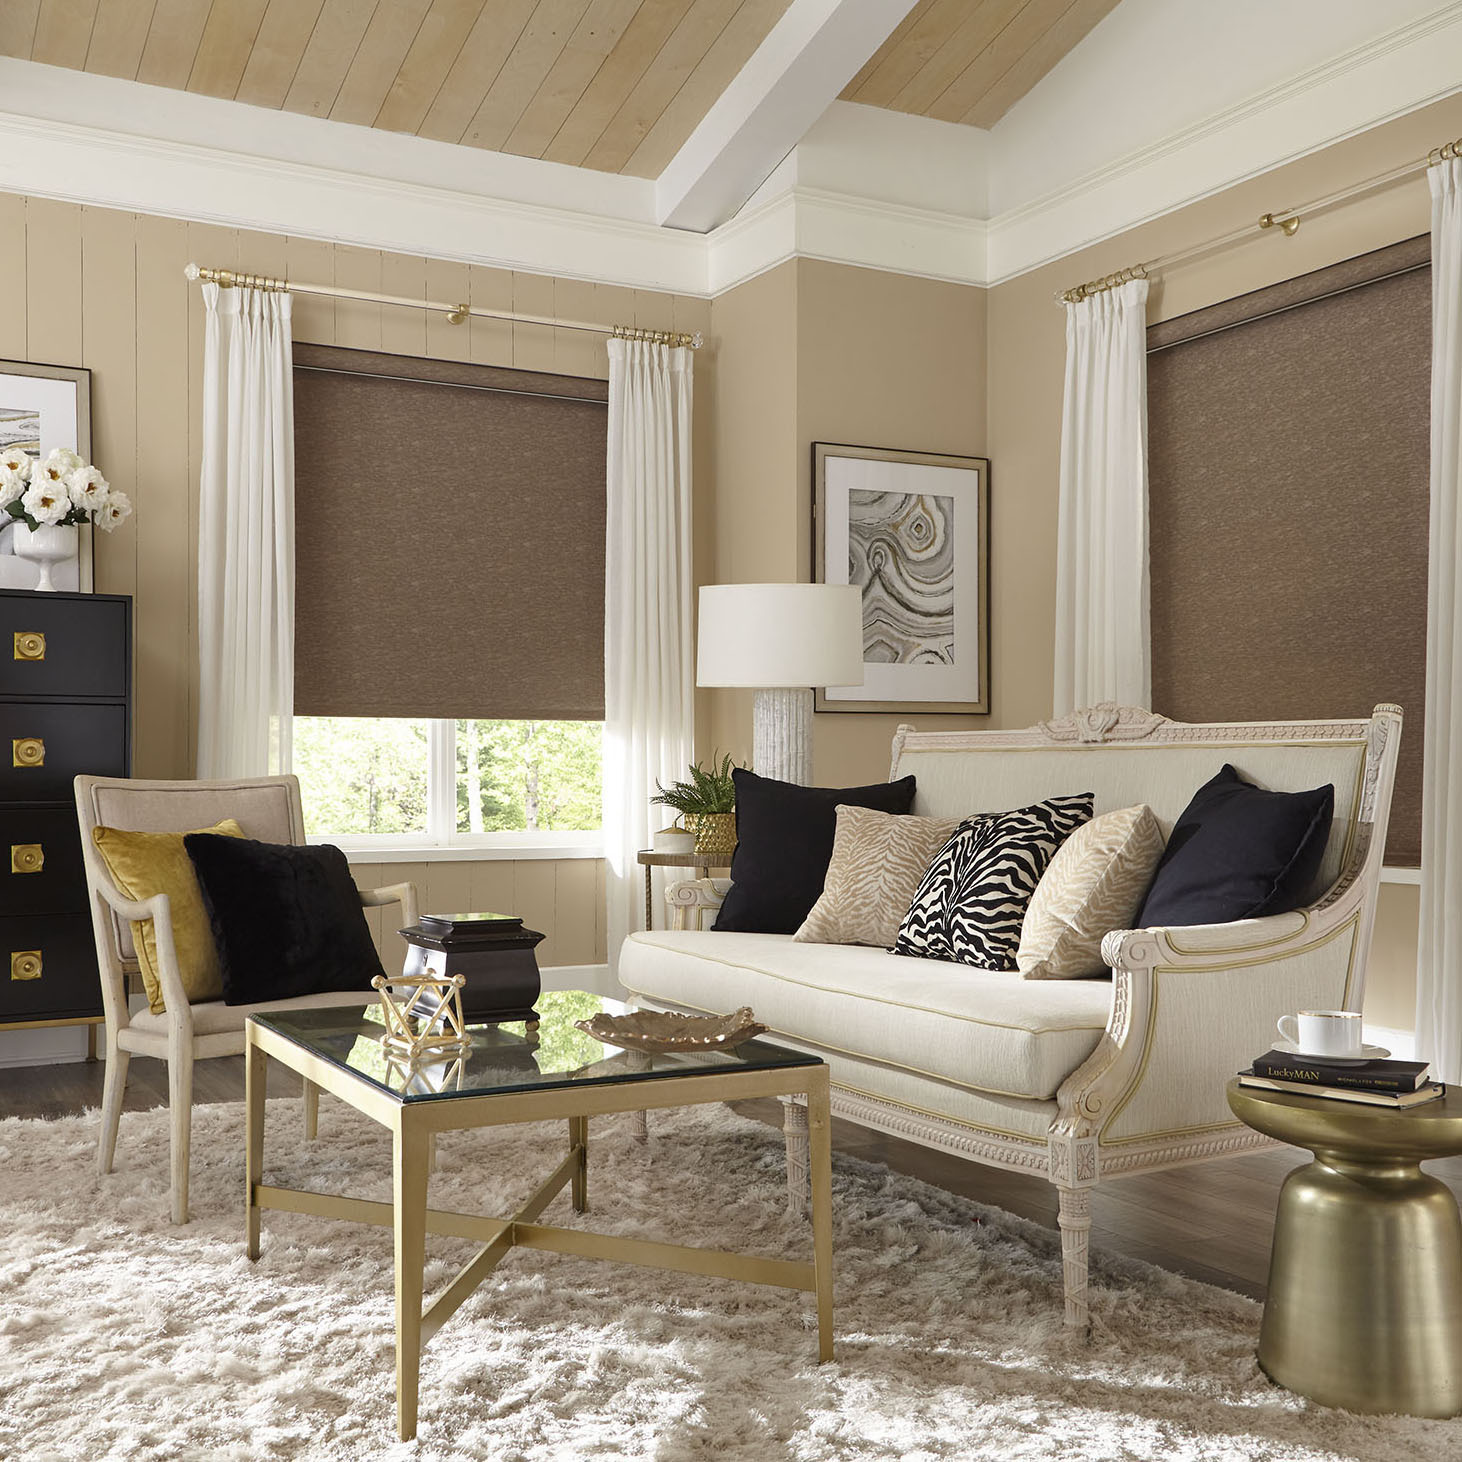 Acrylic with Brass Room Arlington Roller Shades and Select Metal Acrylic Poles and Accessories